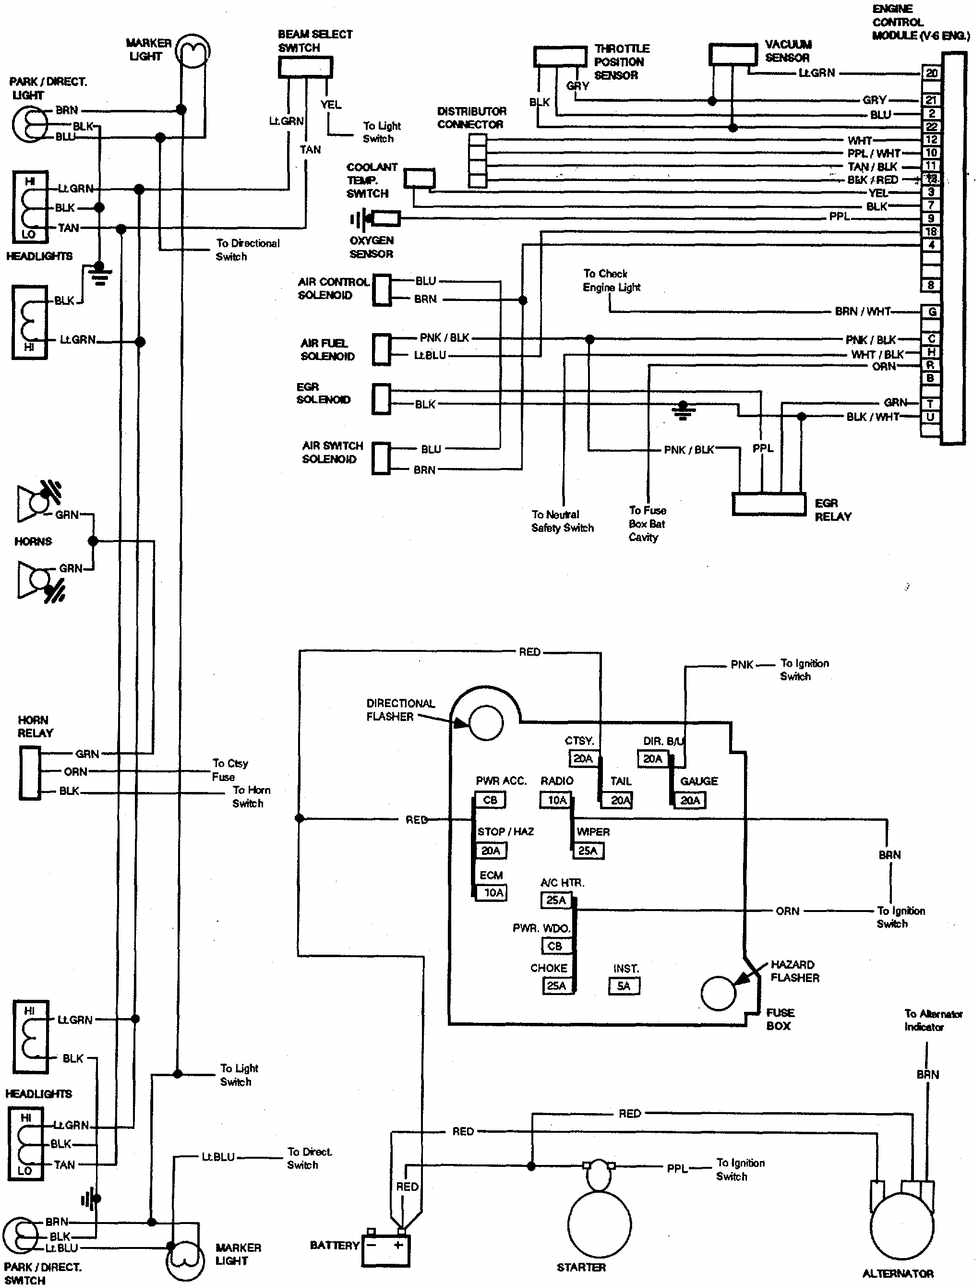 2007 chevy impala fuel system diagram diagrams auto · chevrolet v8 trucks  1981